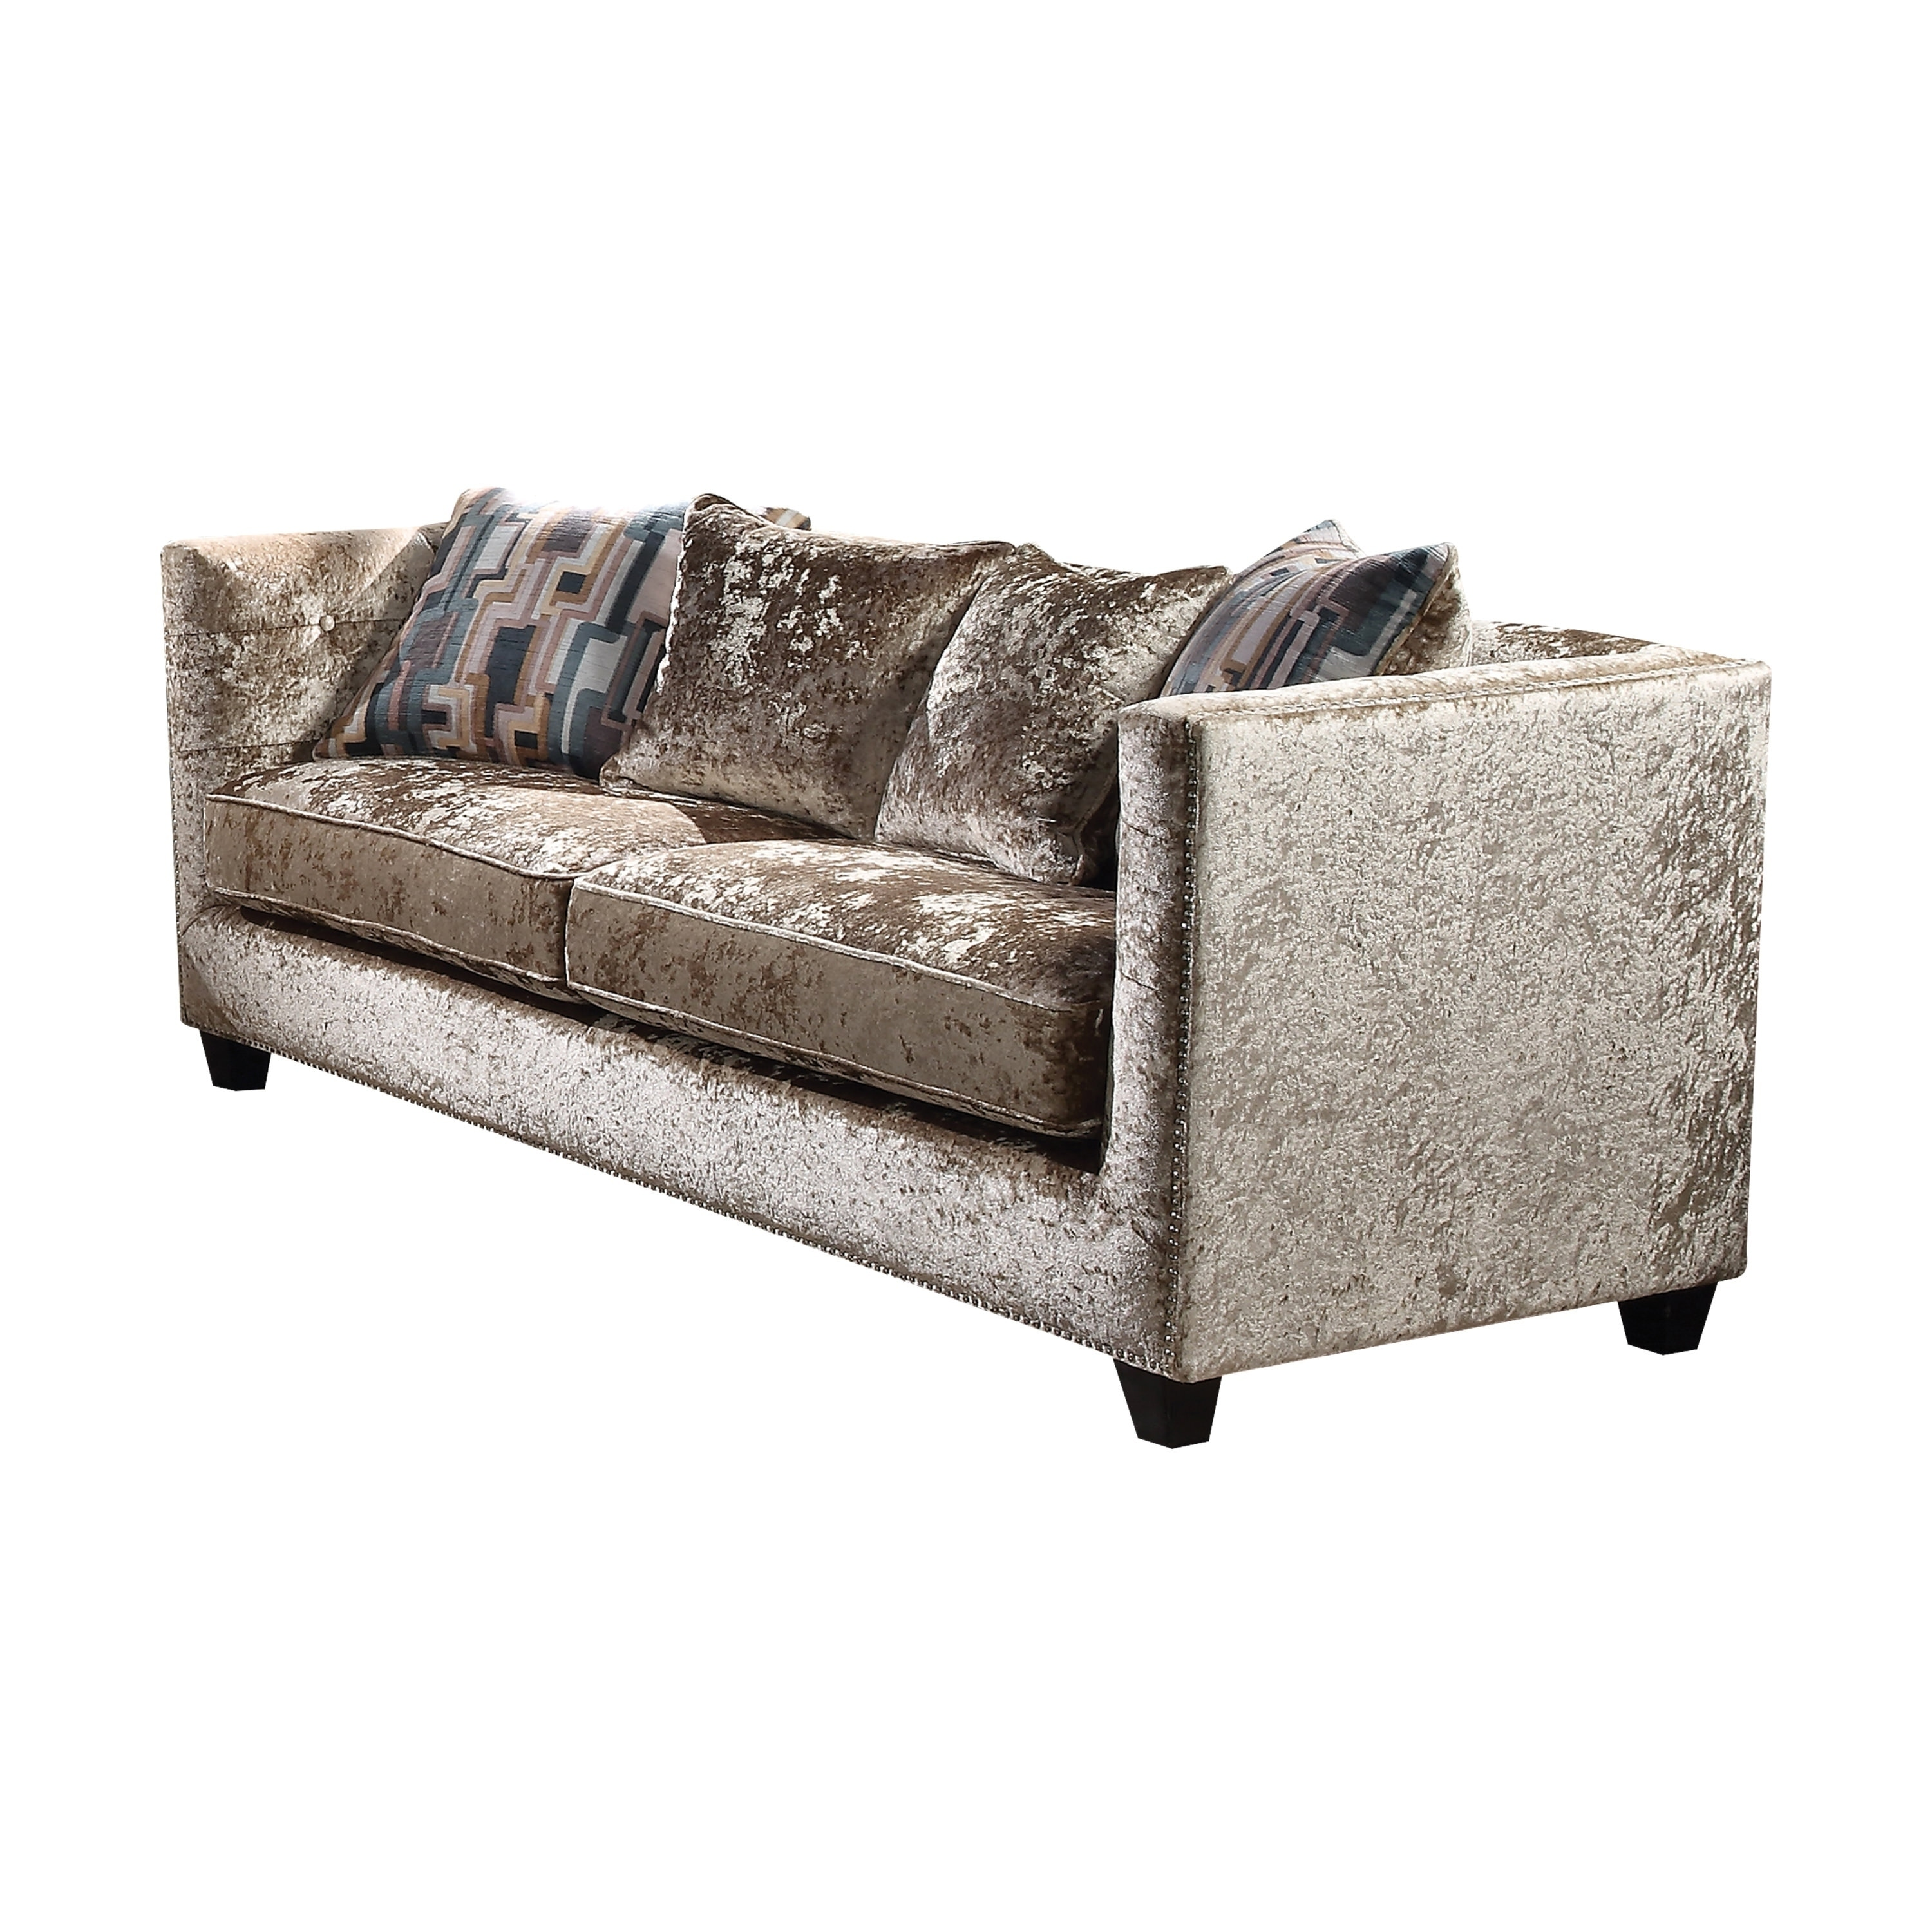 Acme Juliana Down Feather Sofa With 4 Pillows In Champagne Fabric   Free  Shipping Today   Overstock   26337808